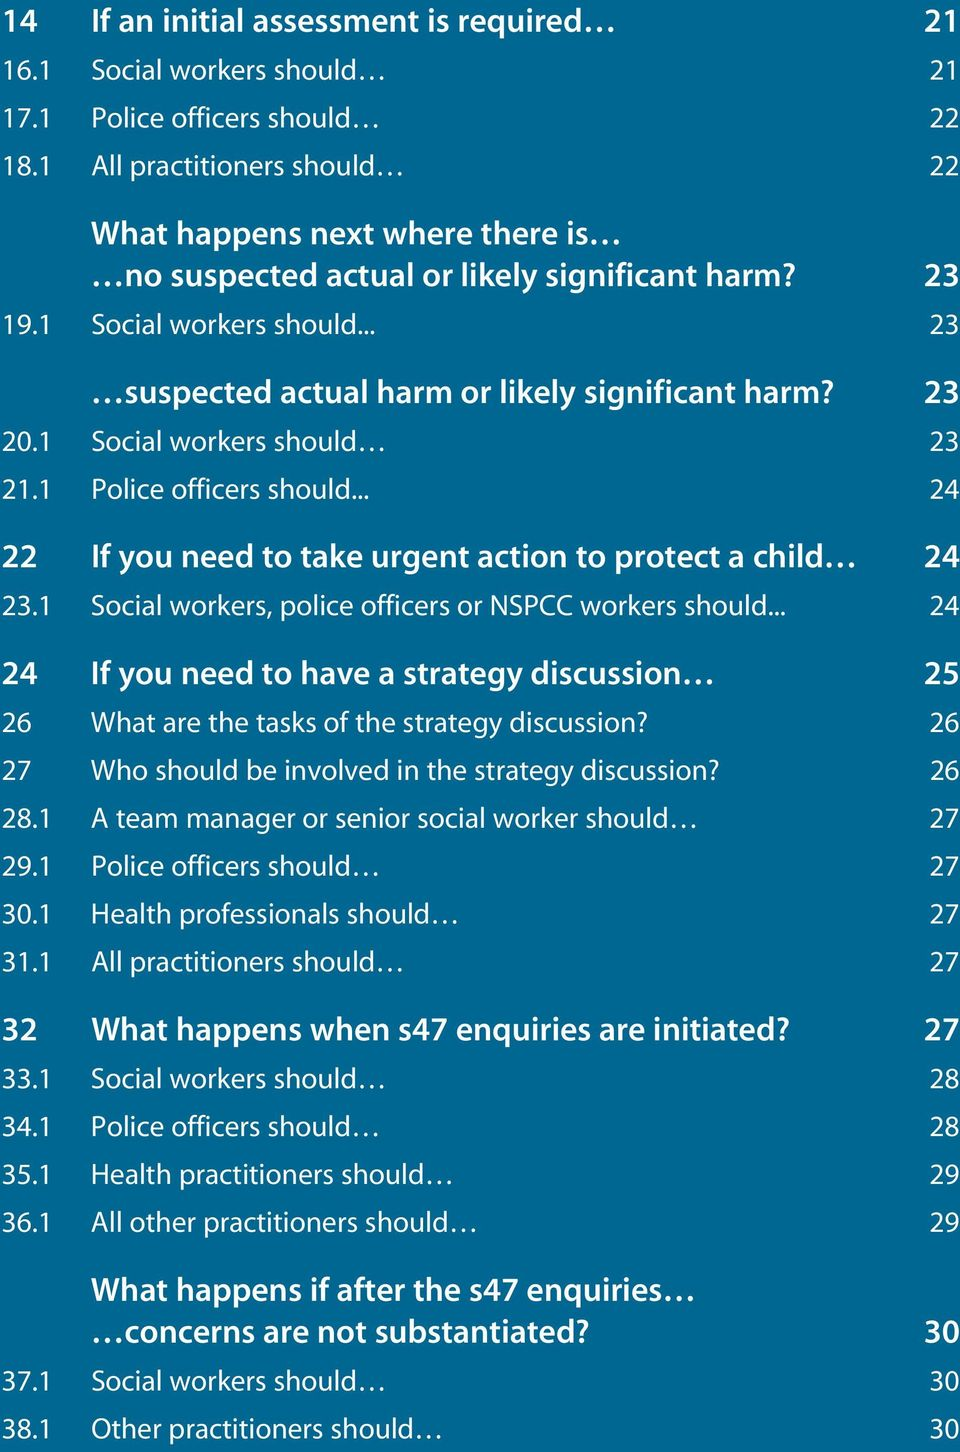 23 20.1 Social workers should 23 21.1 Police officers should... 24 22 If you need to take urgent action to protect a child 24 23.1 Social workers, police officers or NSPCC workers should.